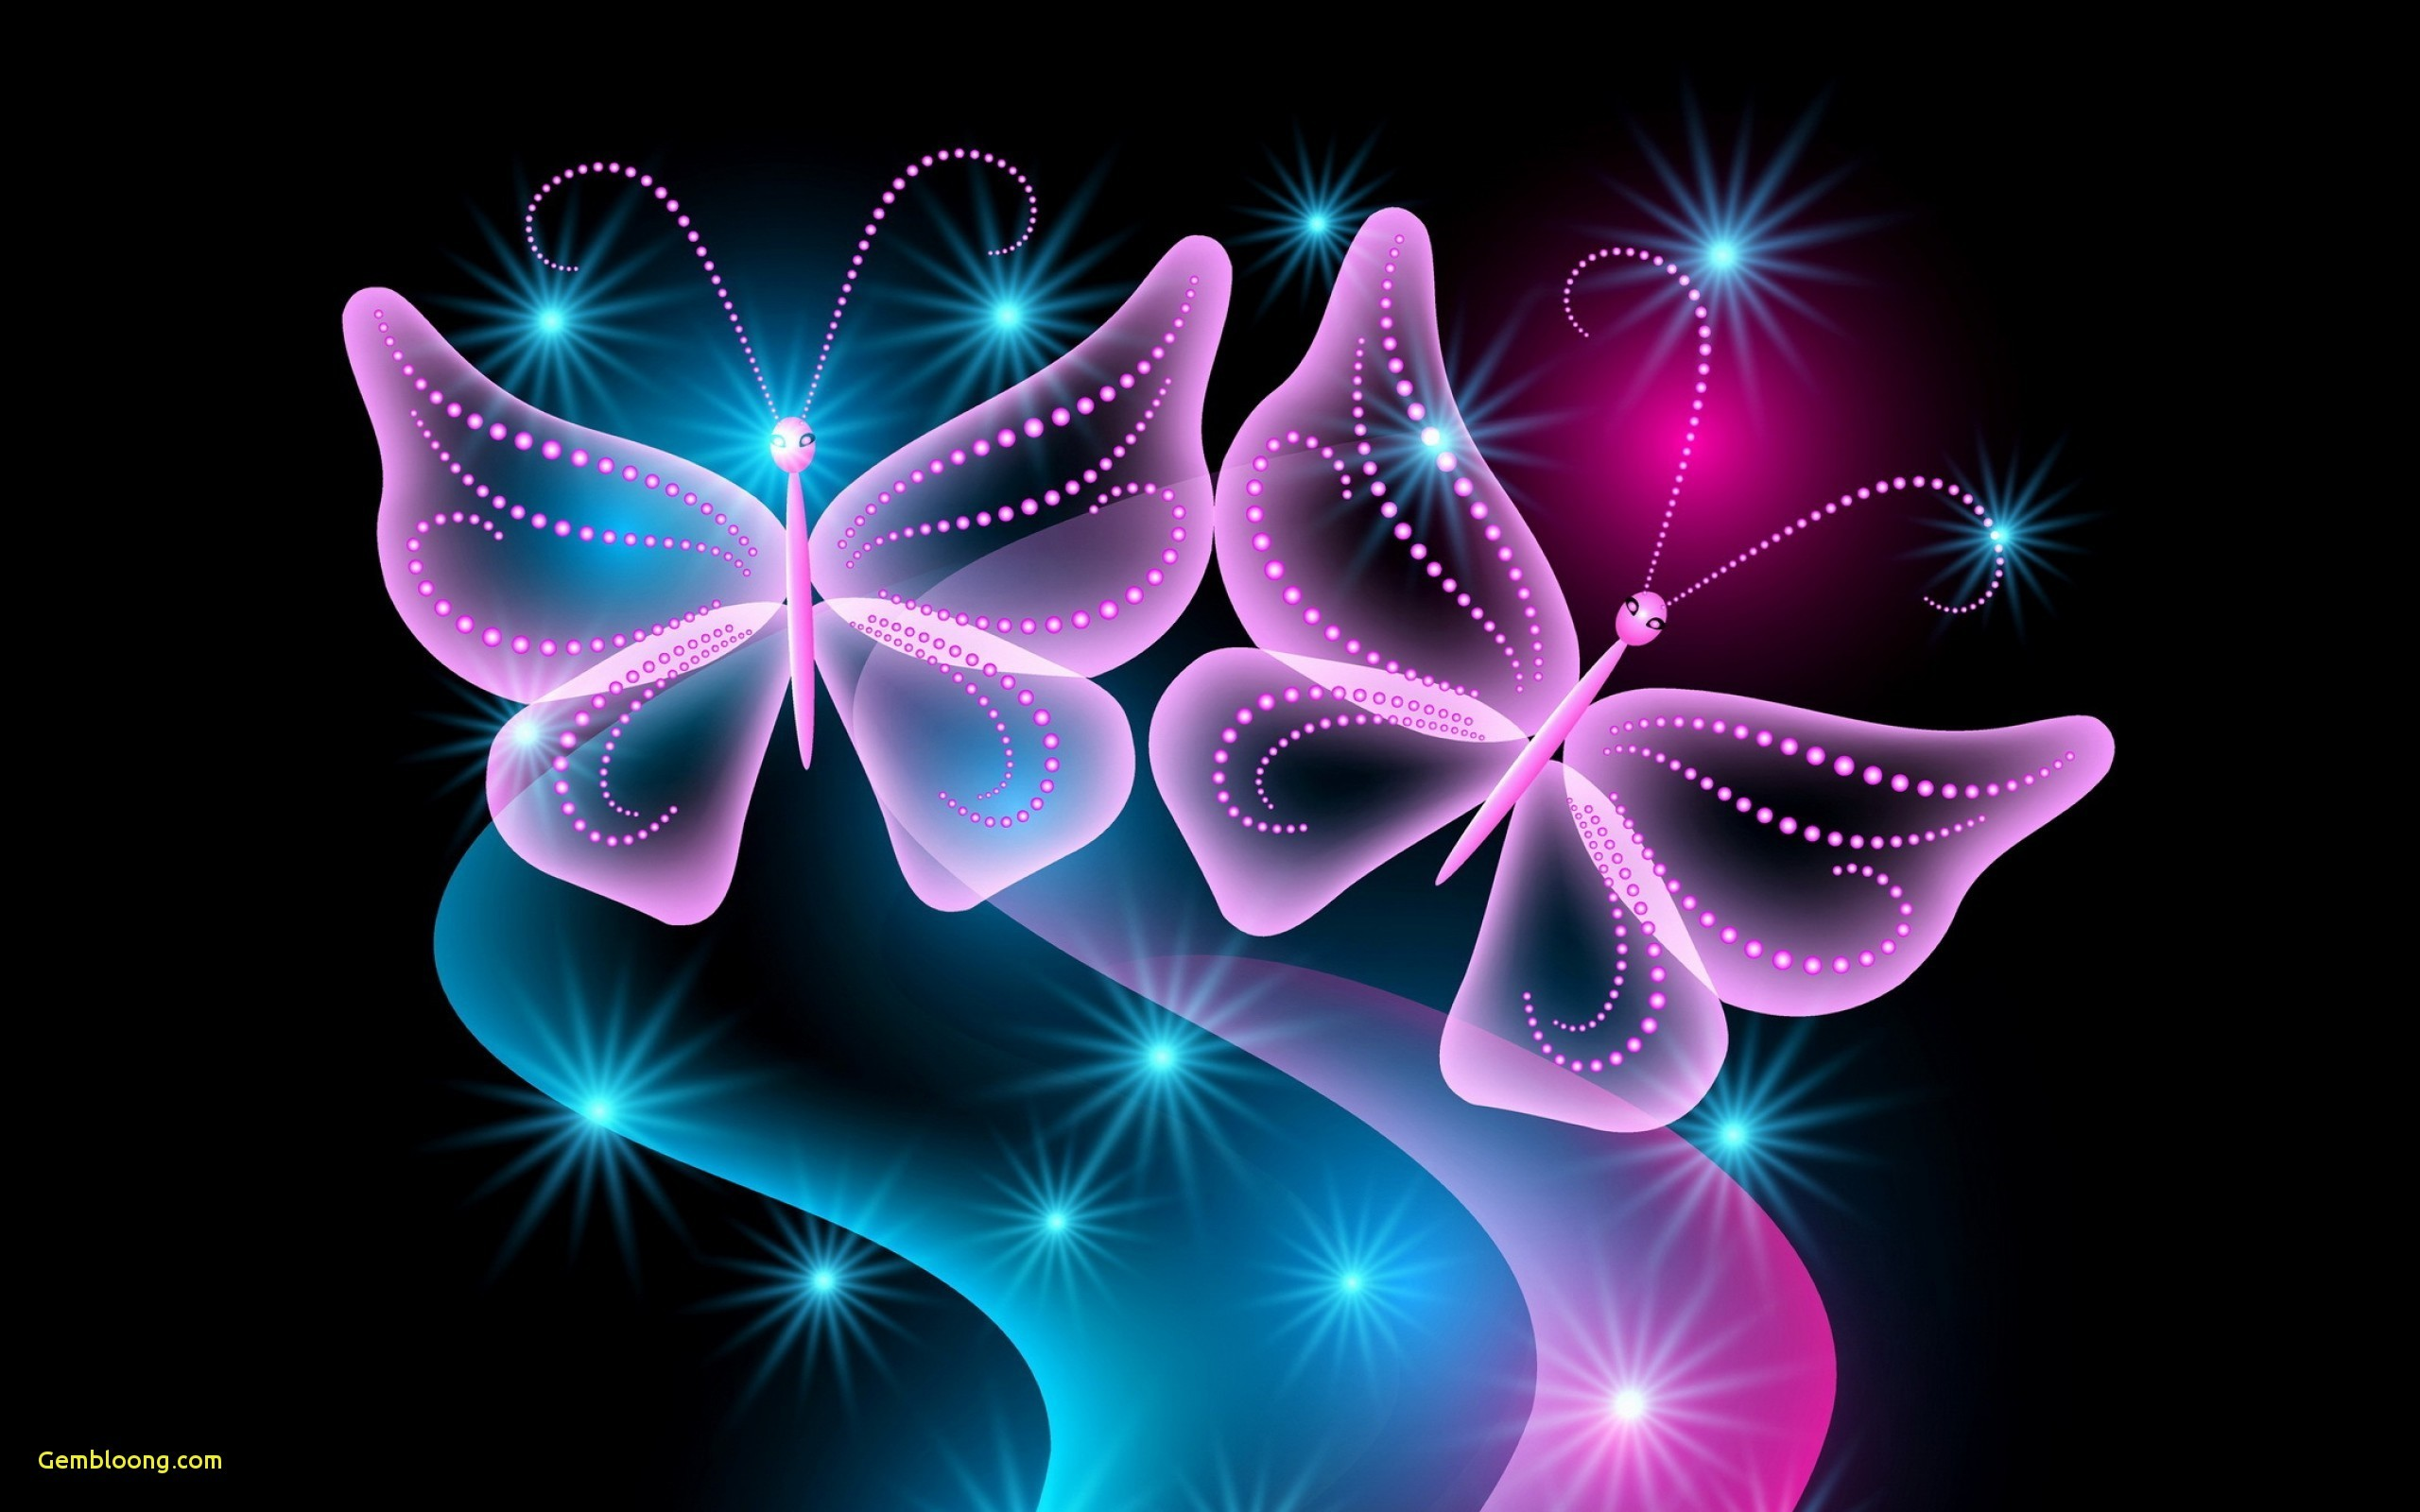 2560x1600 - Pretty Butterfly Backgrounds 45